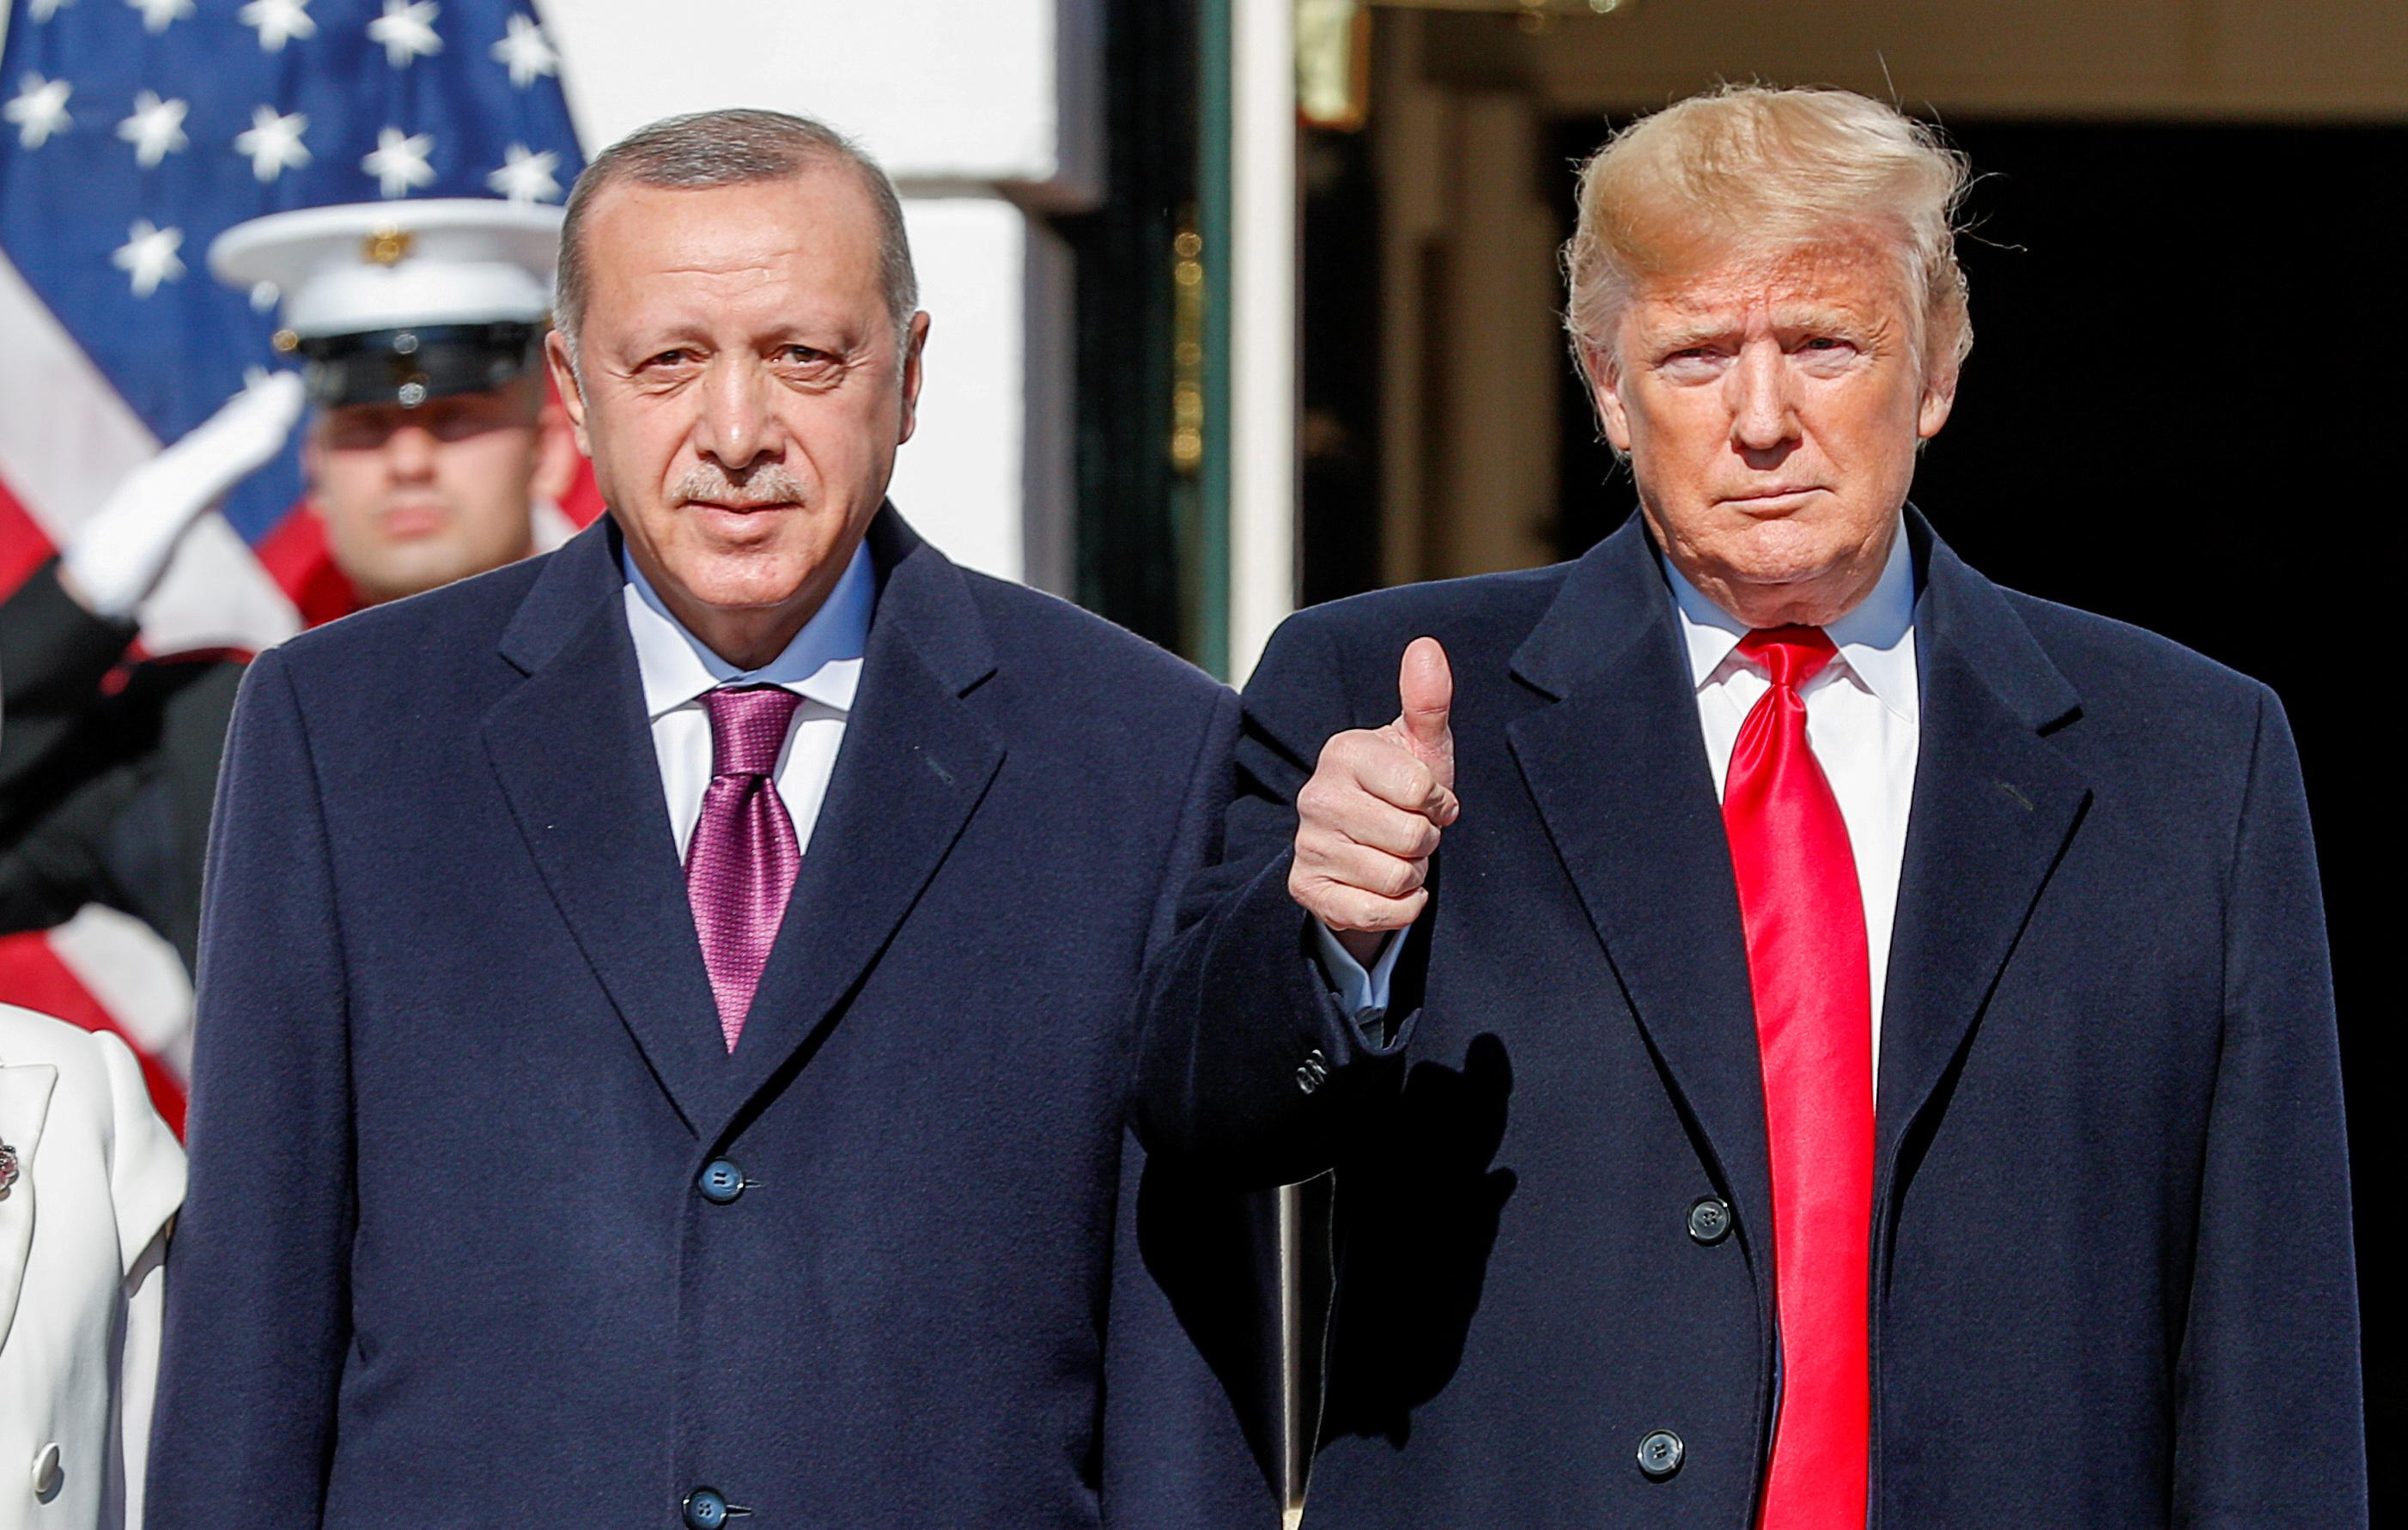 Amid tensions with Turkey, Trump lauds relation with Erdogan